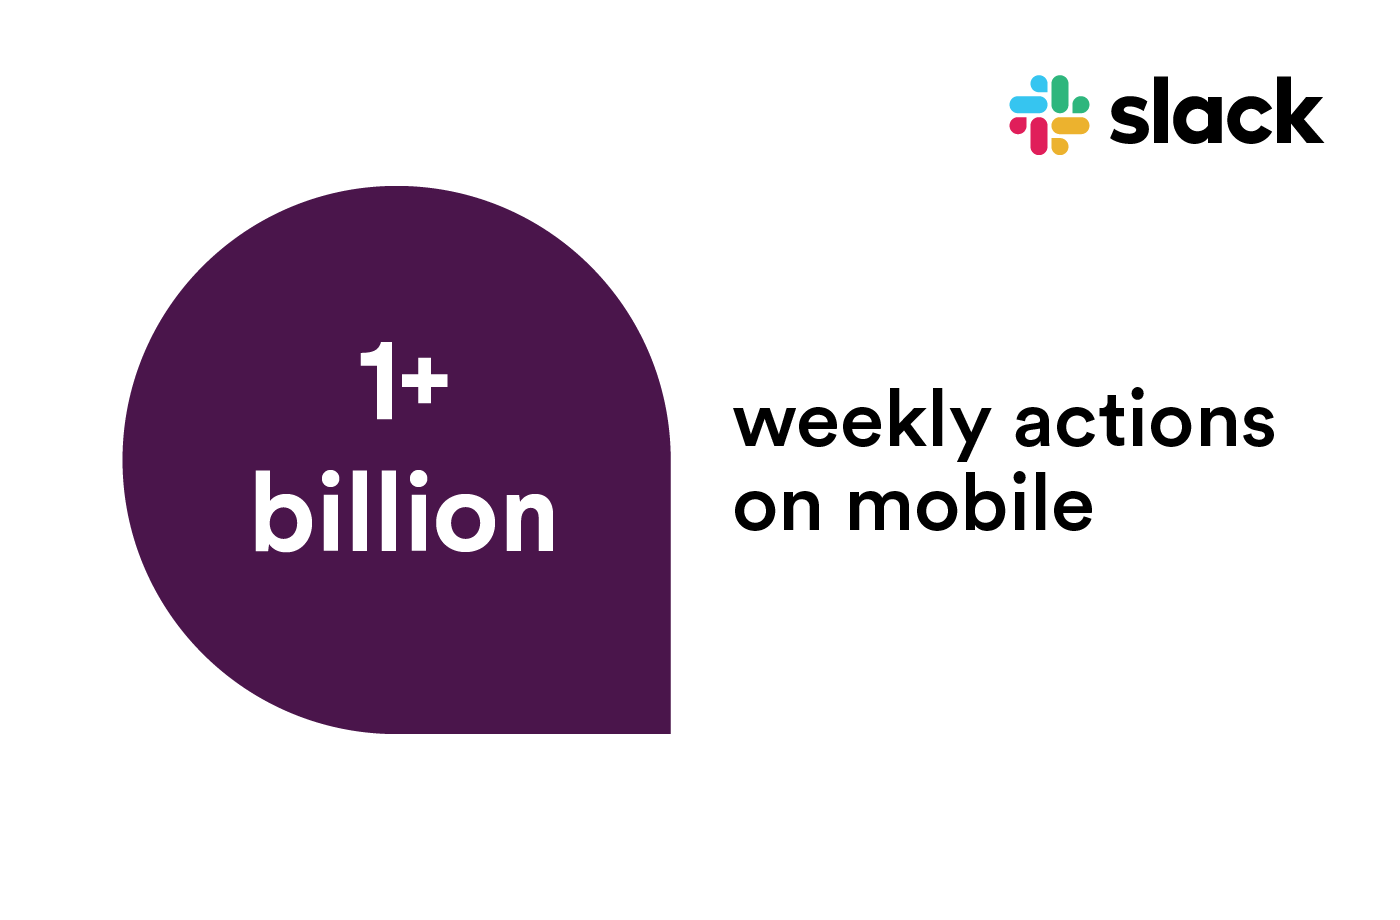 More than one billion actions are taken in Slack's mobile app each week